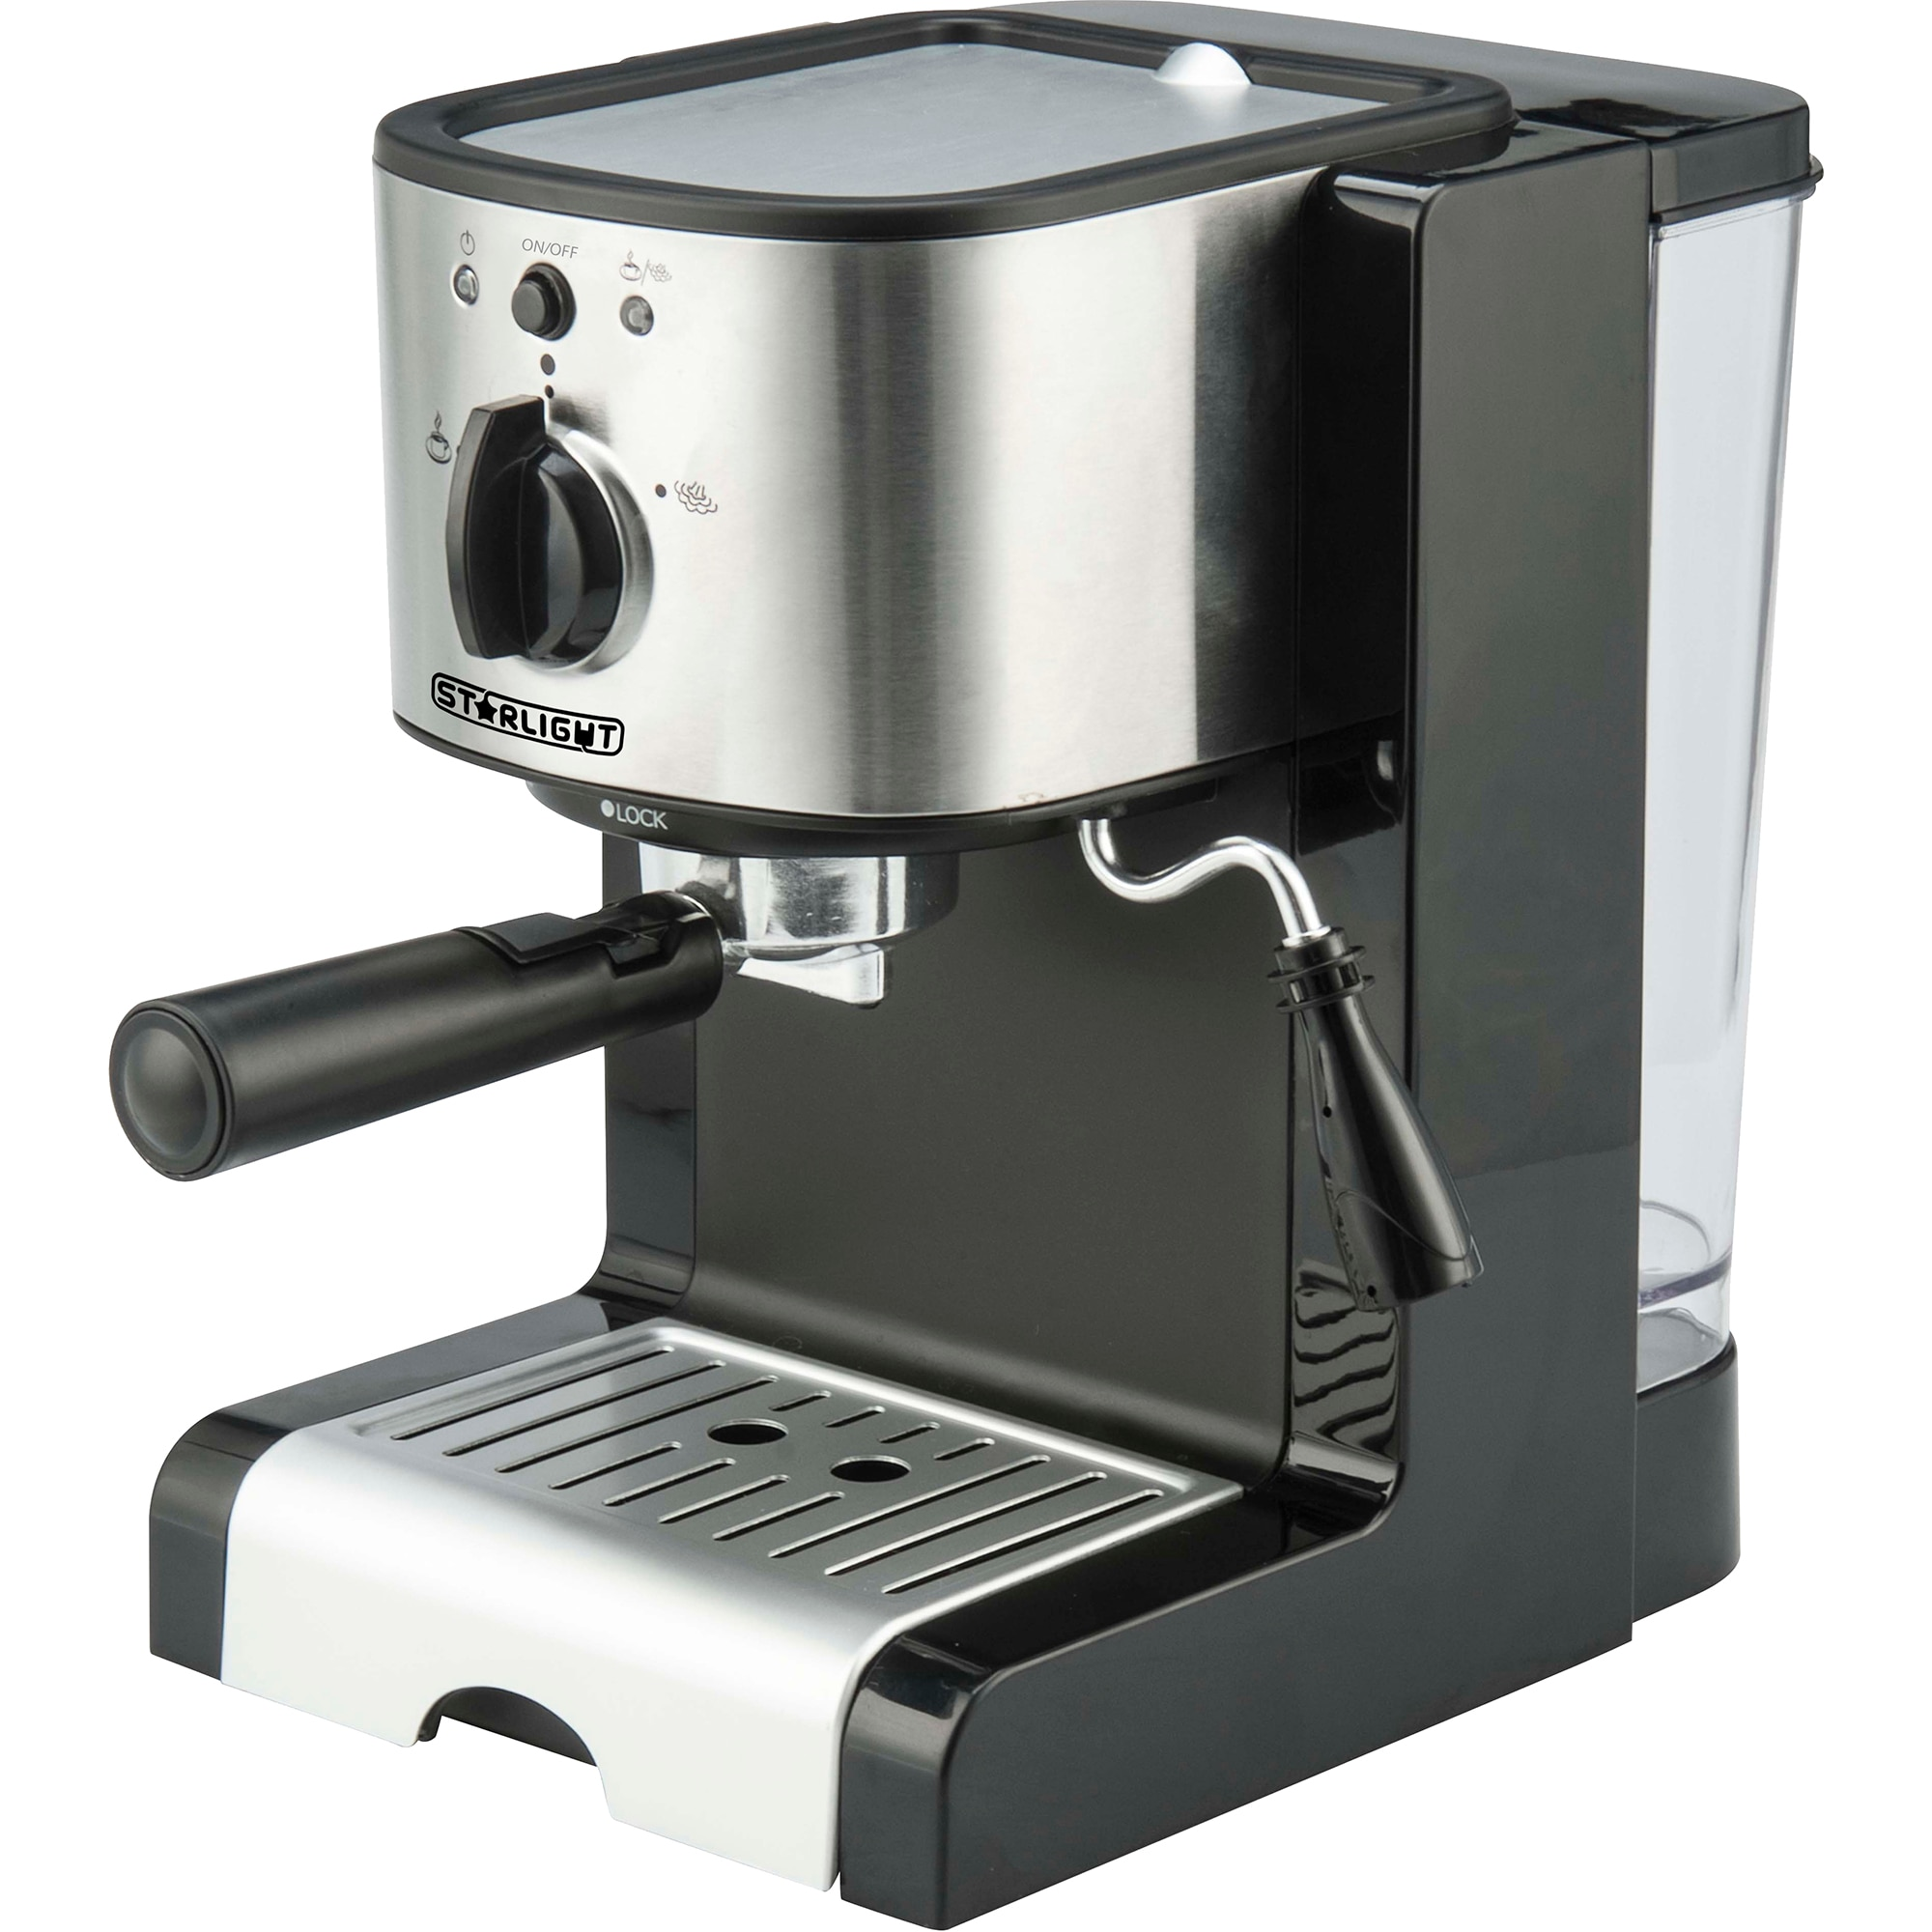 Fotografie Espressor manual Star-Light EMD-1515, 15 Bar, Dispozitiv spumare, 1.5 l, Negru/Inox